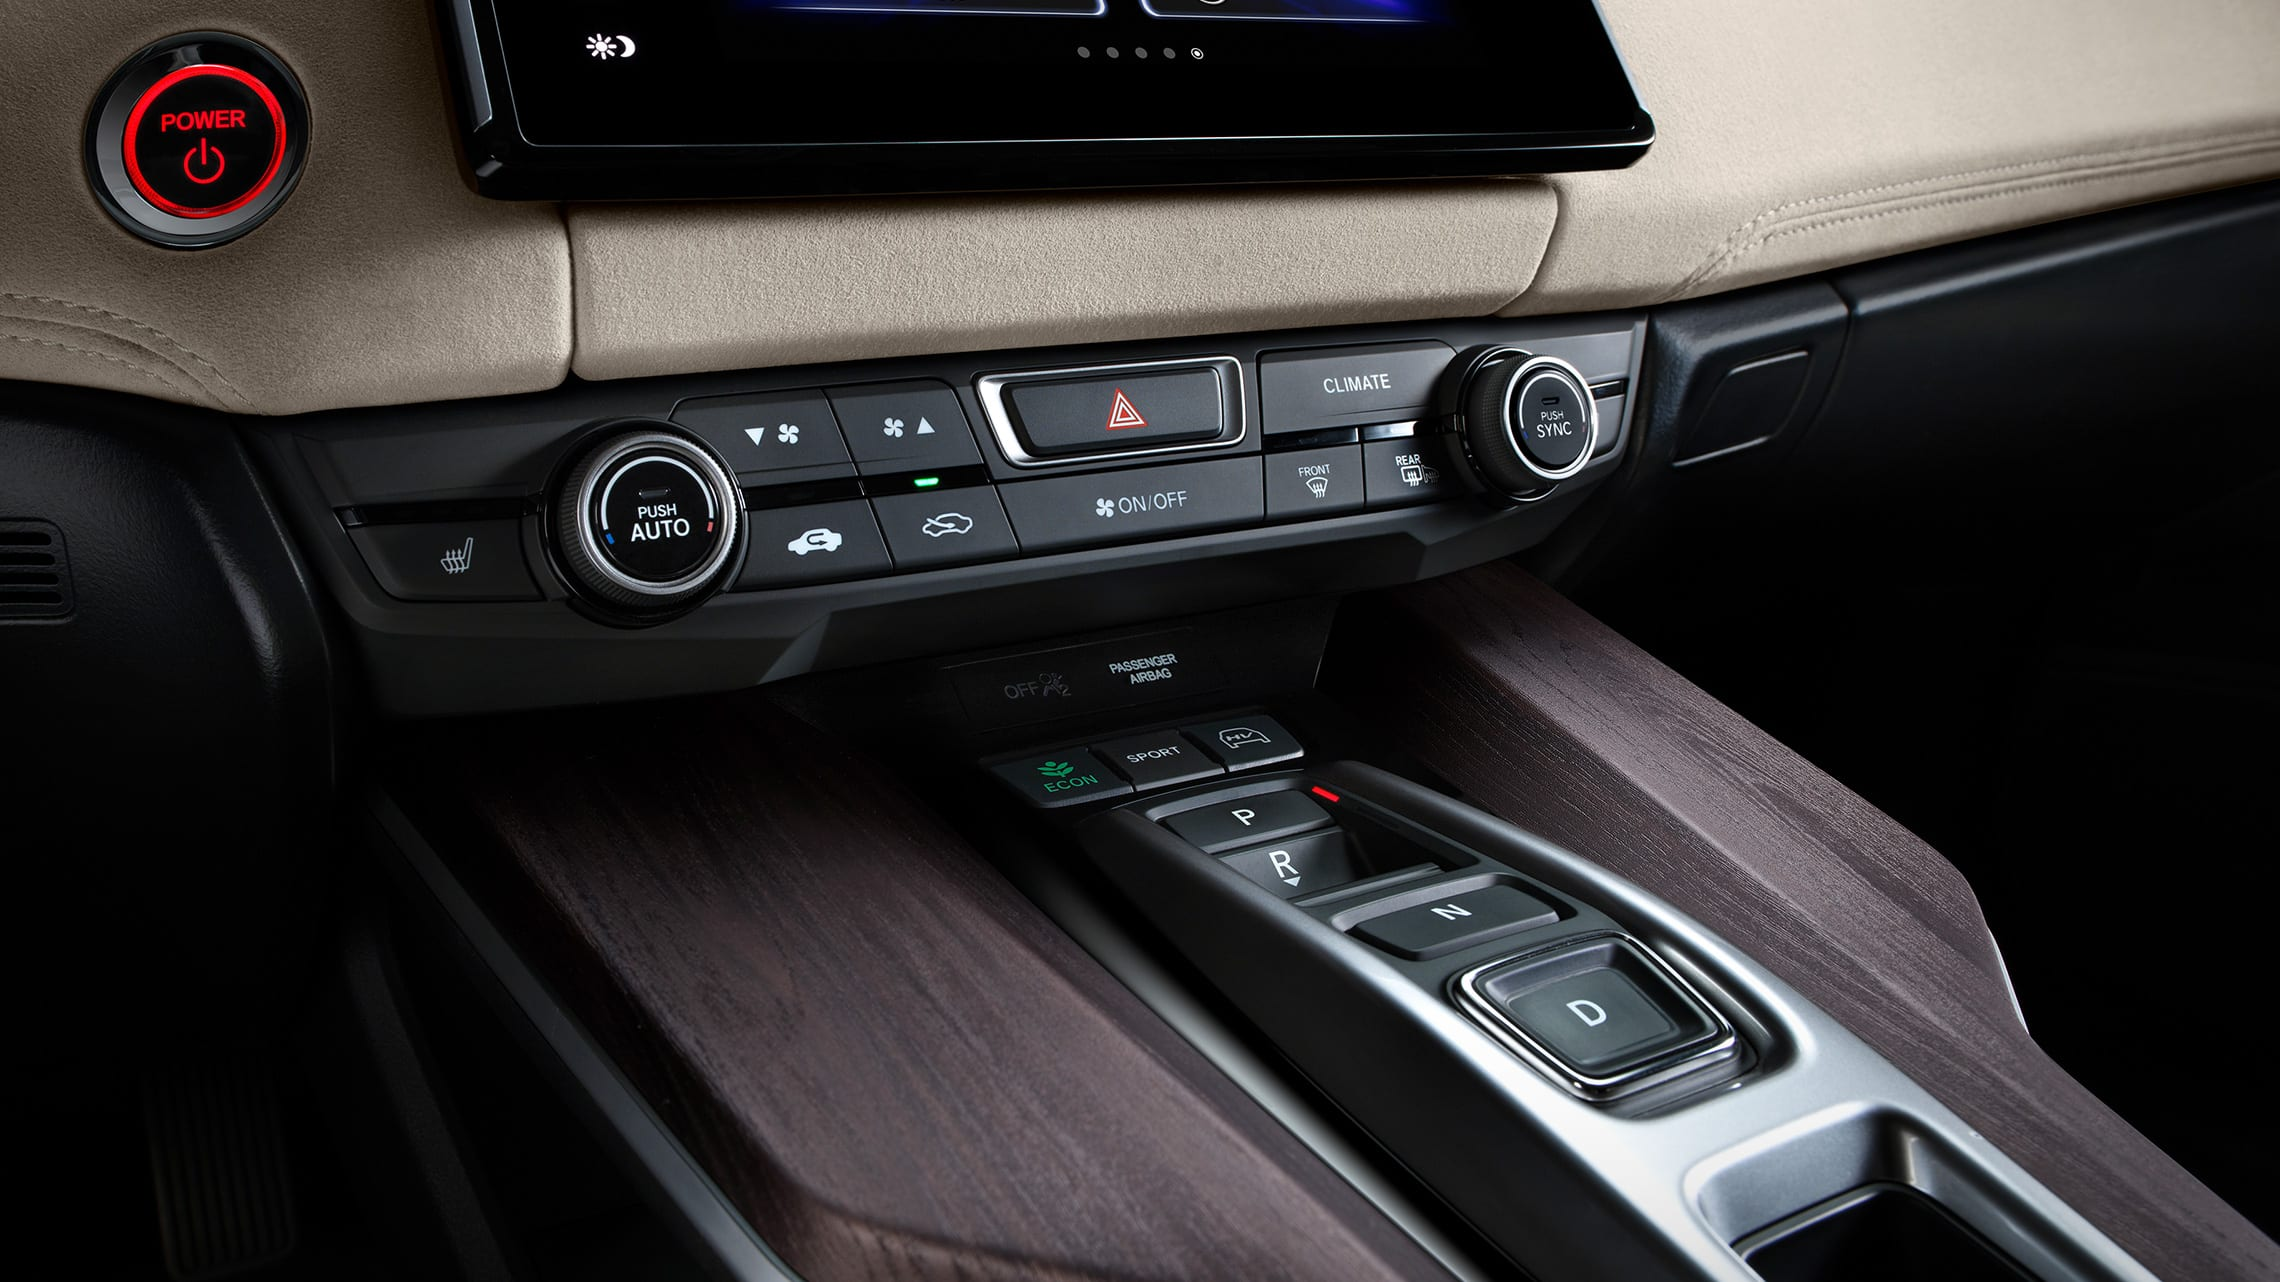 Detail of dual-zone automatic climate controls on center console.